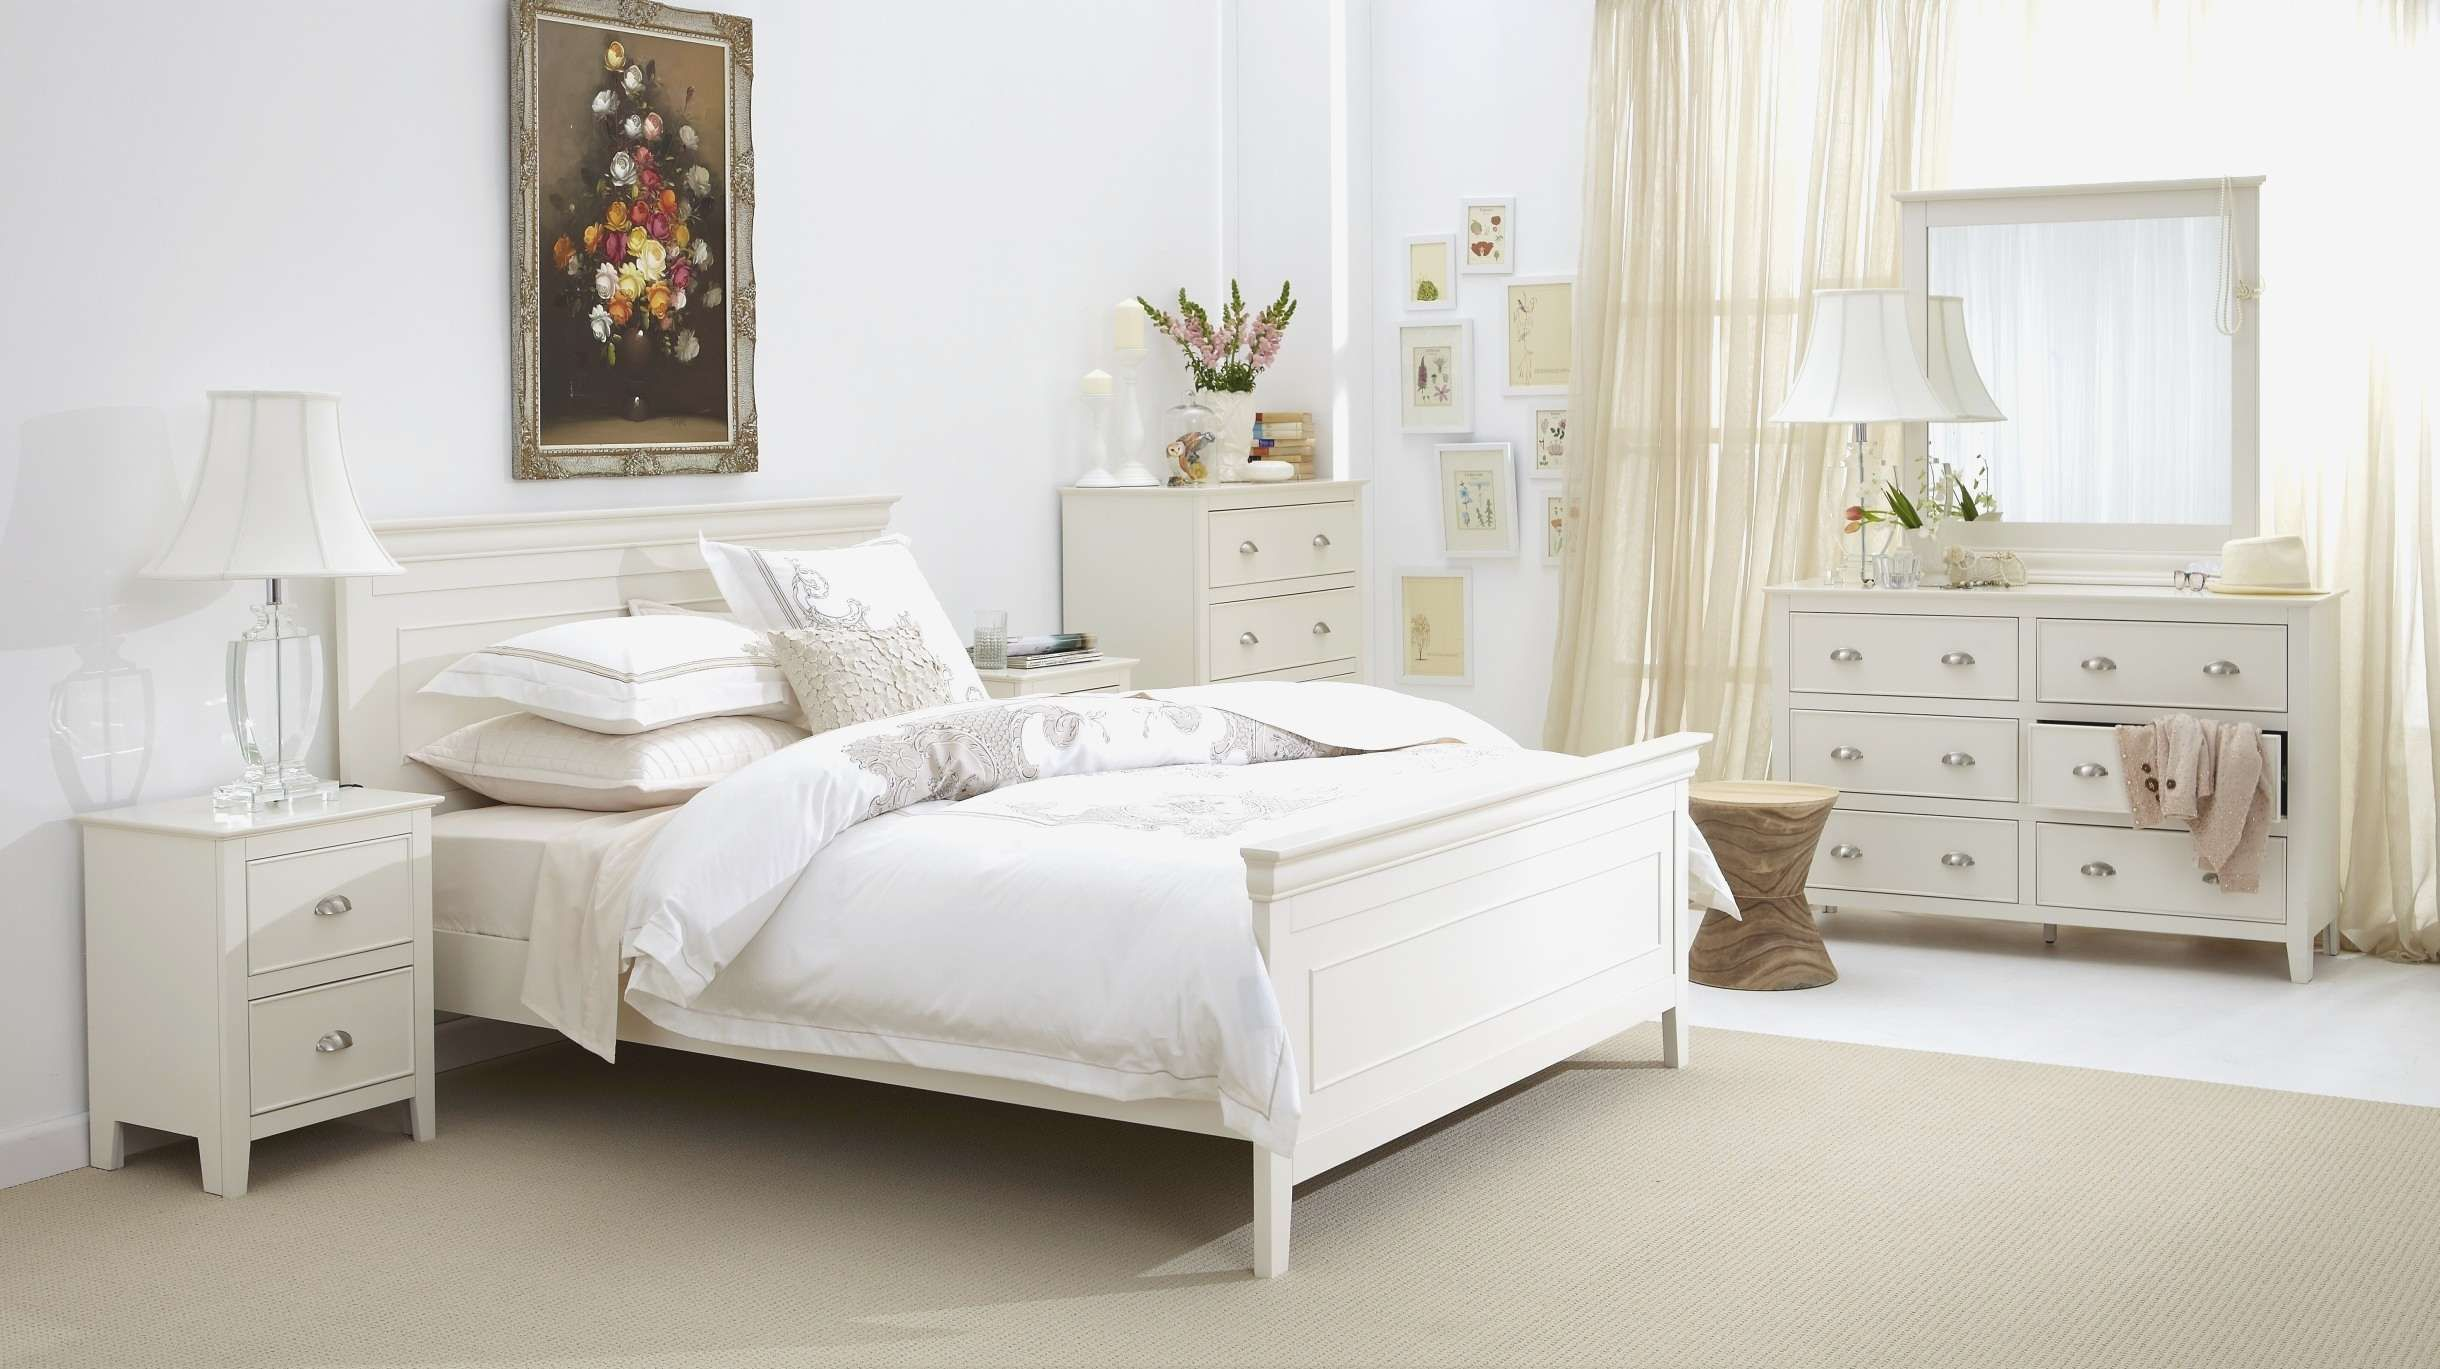 Unique Jcpenney Bedroom Furniture Pictures, Awesome Jcpenney Bedroom ...